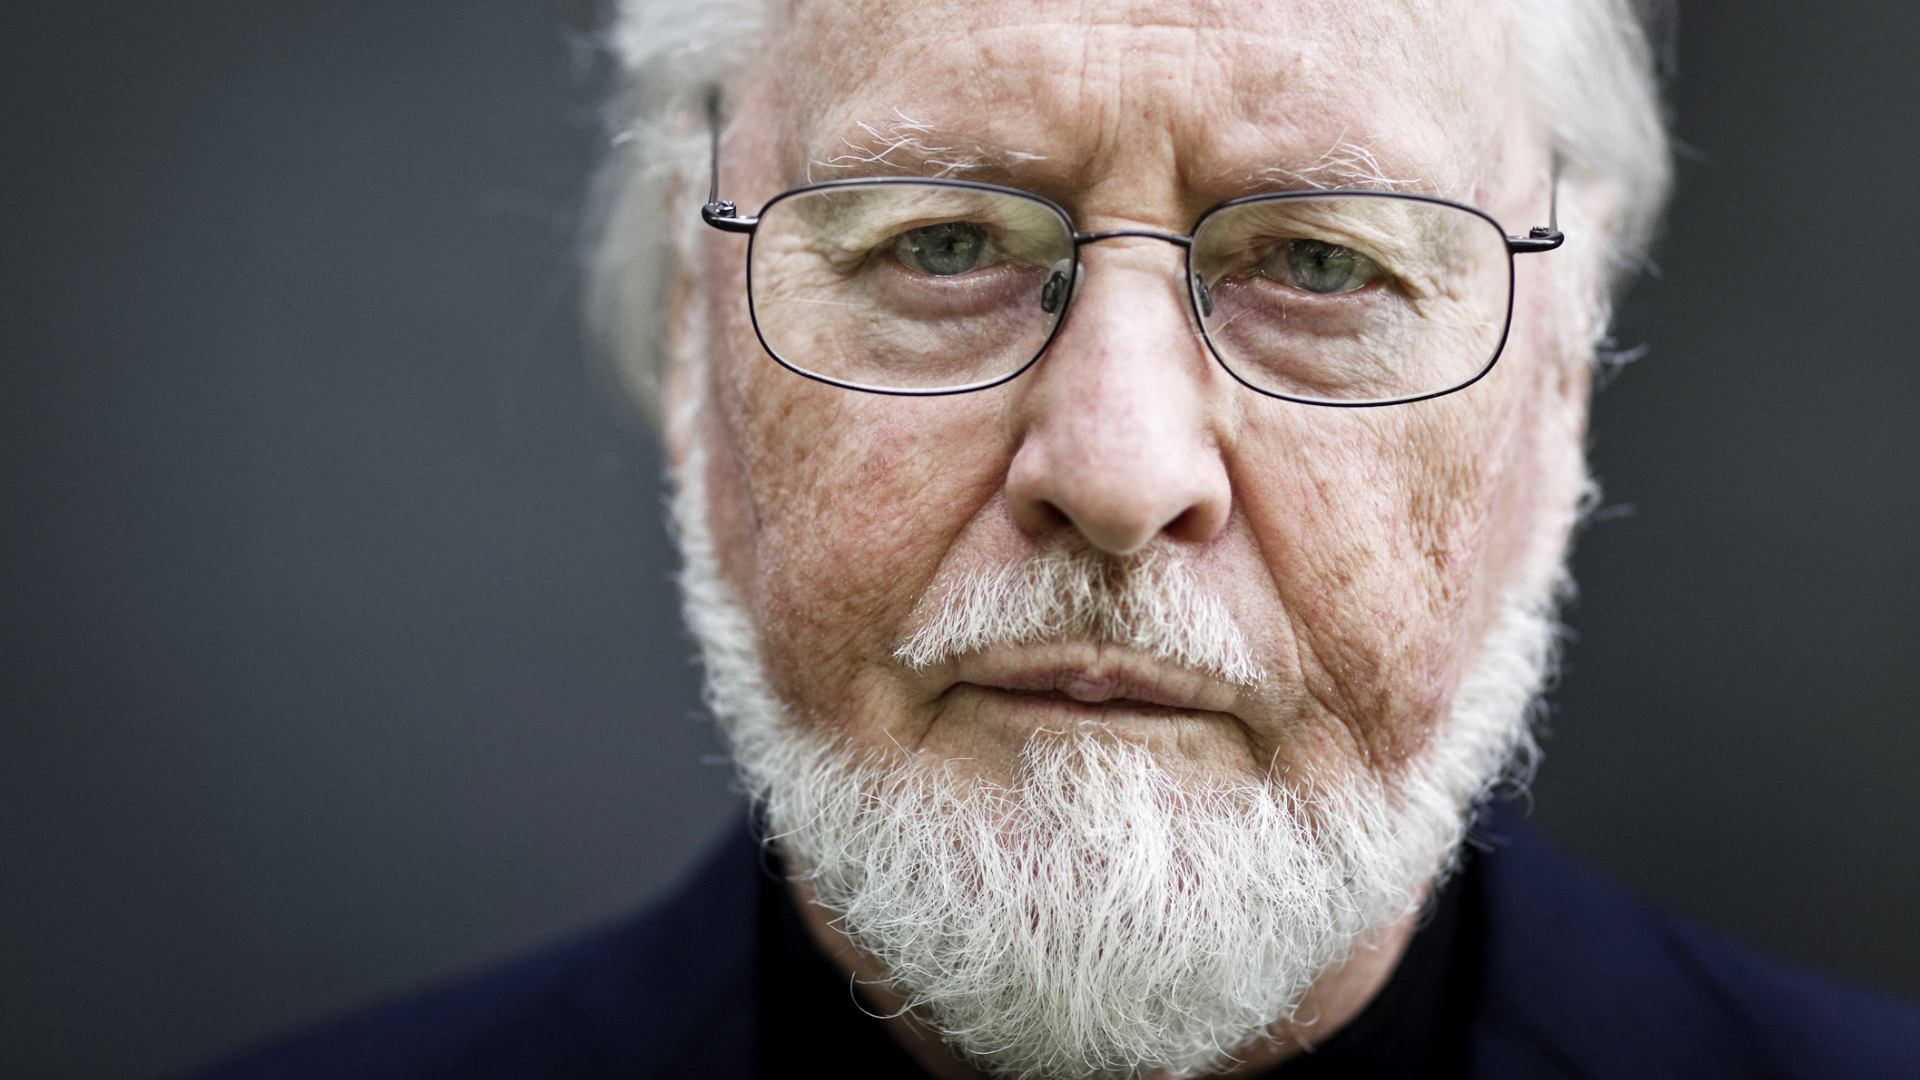 john williams John williams: john williams, american composer who created some of the most iconic film scores of all time he scored more than a hundred films, many of which were directed by steven.